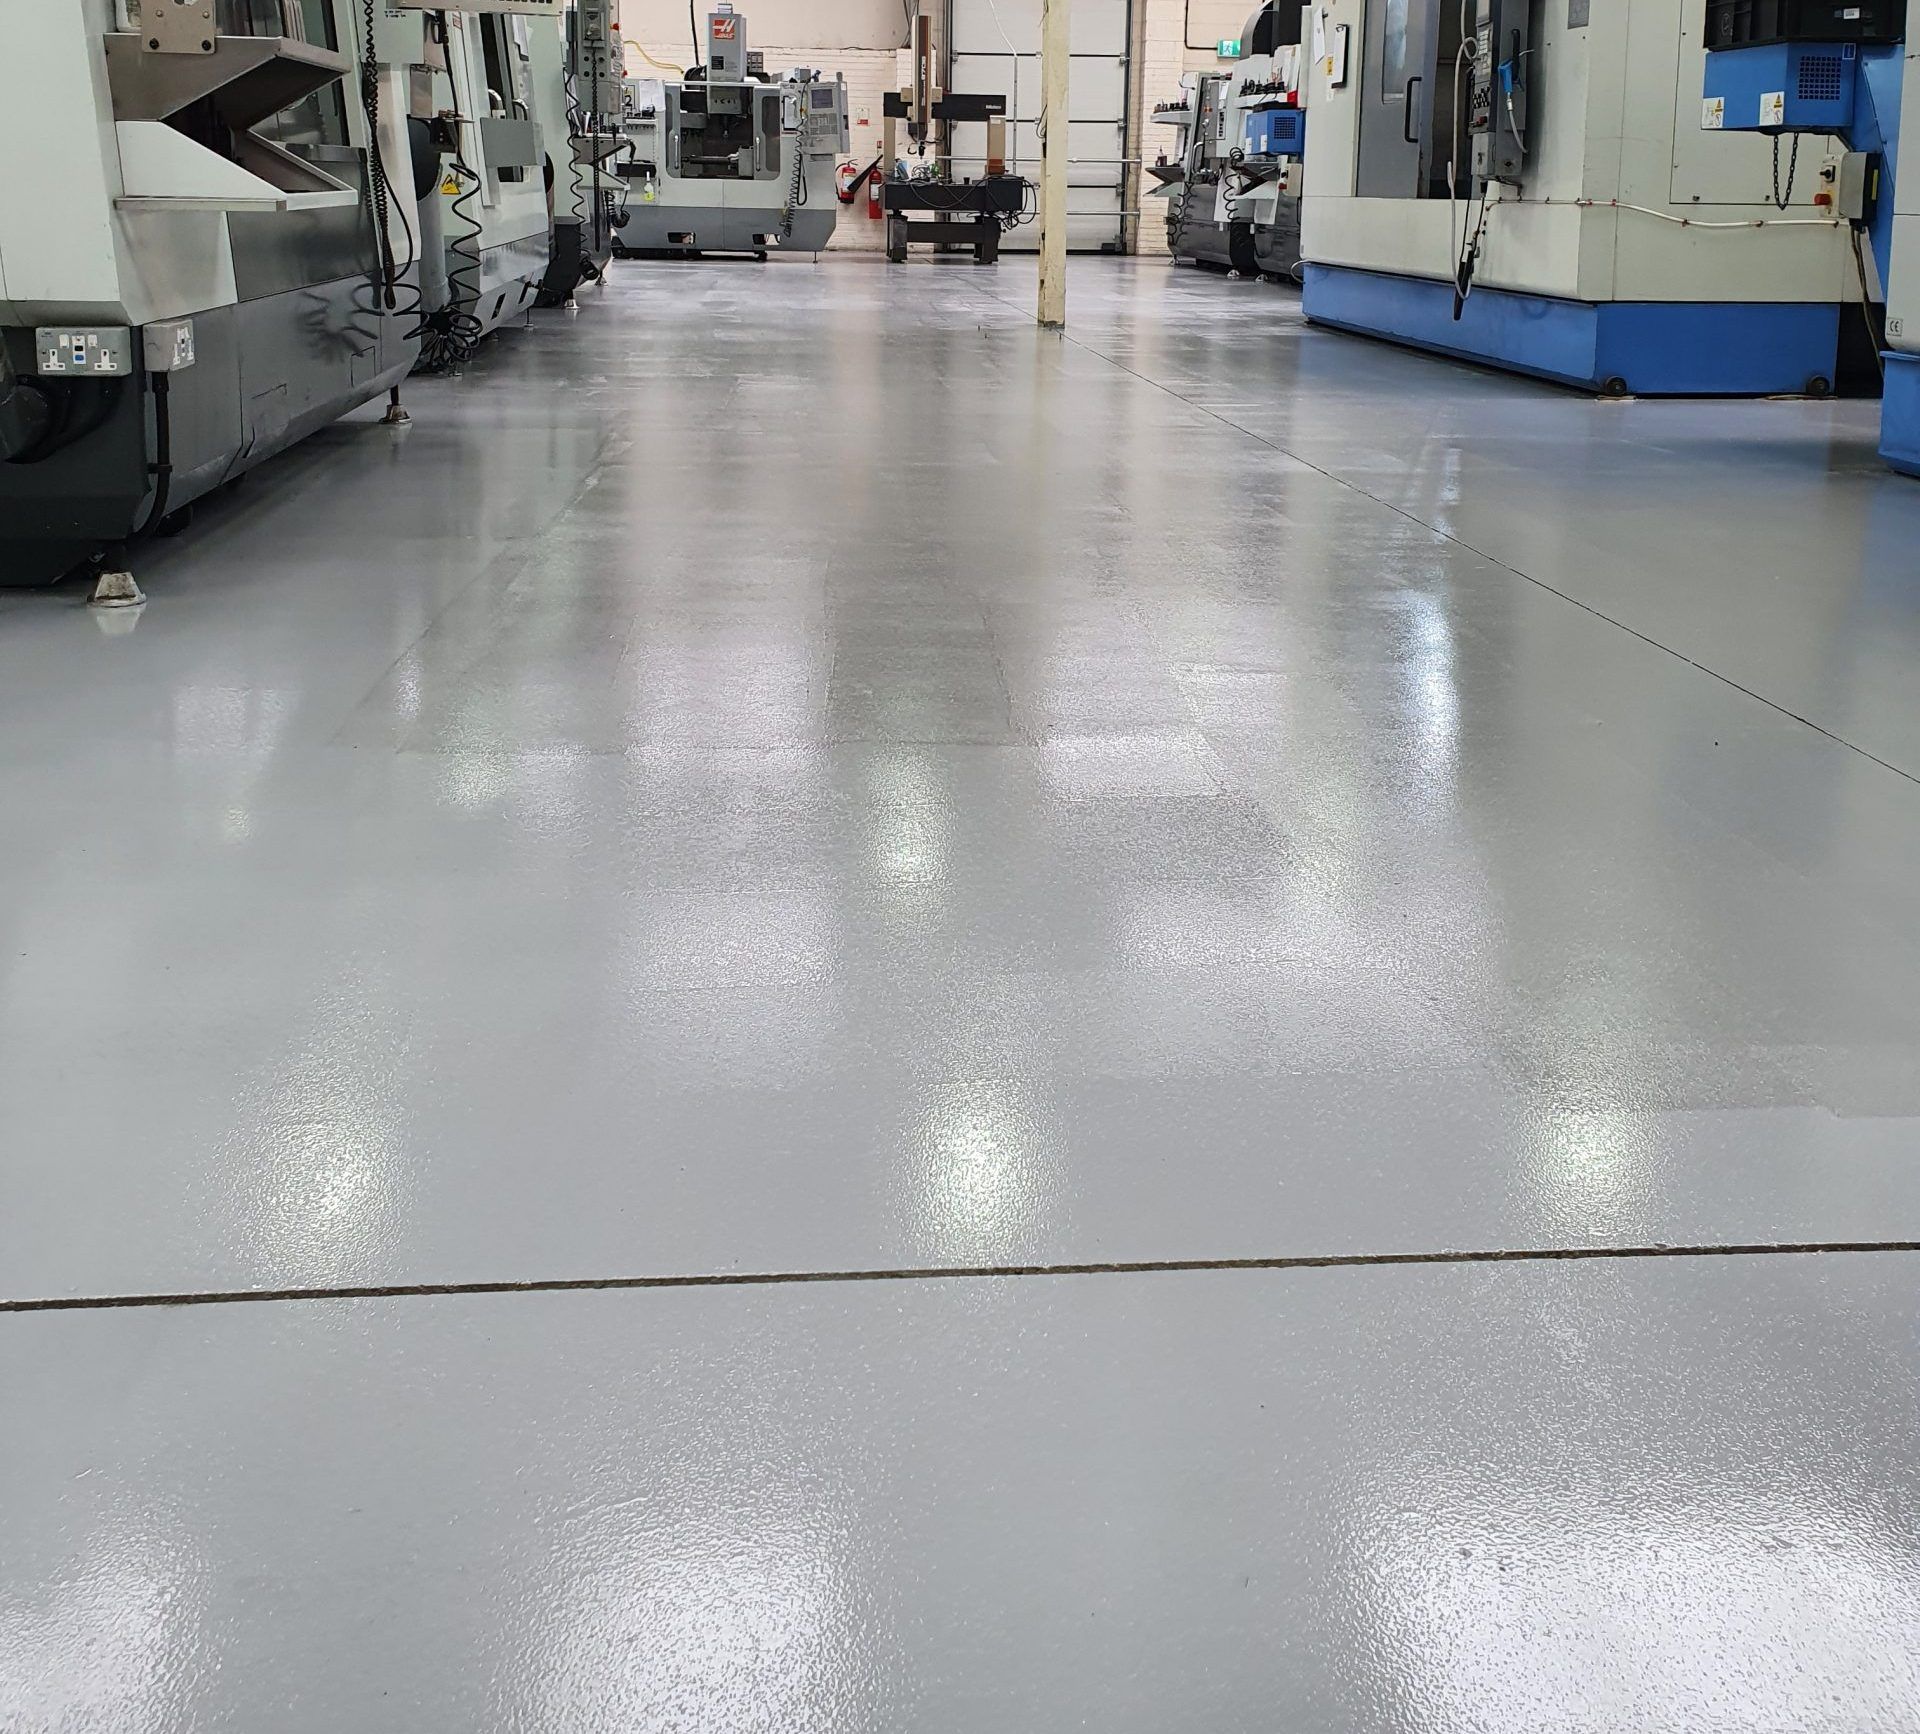 New floors and 5 S today for one of our milling sections.